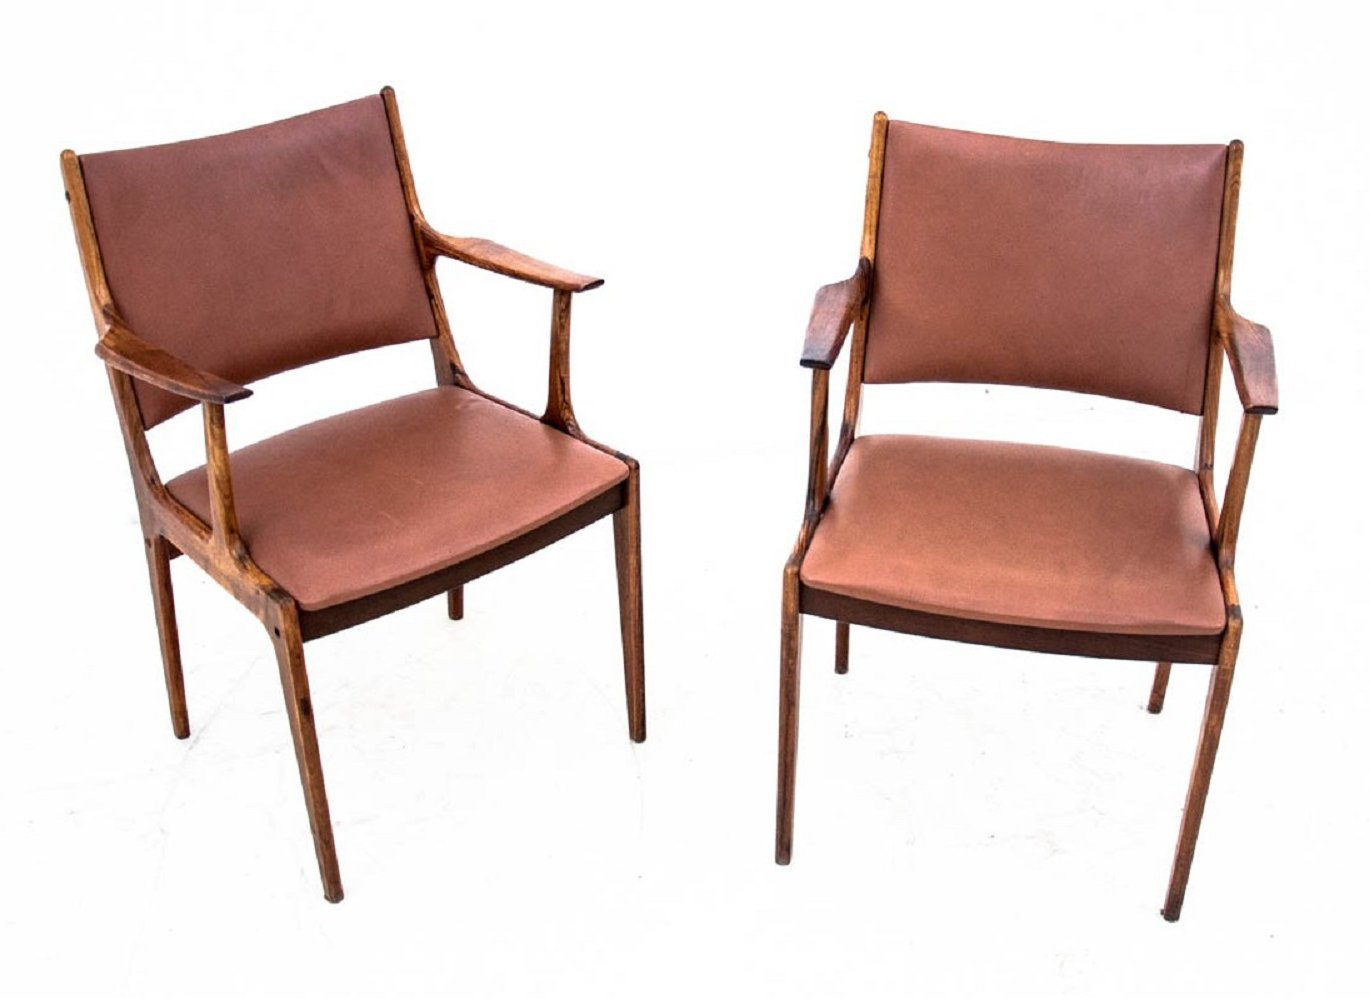 Two vintage rosewood armchairs, Danish design 1960s